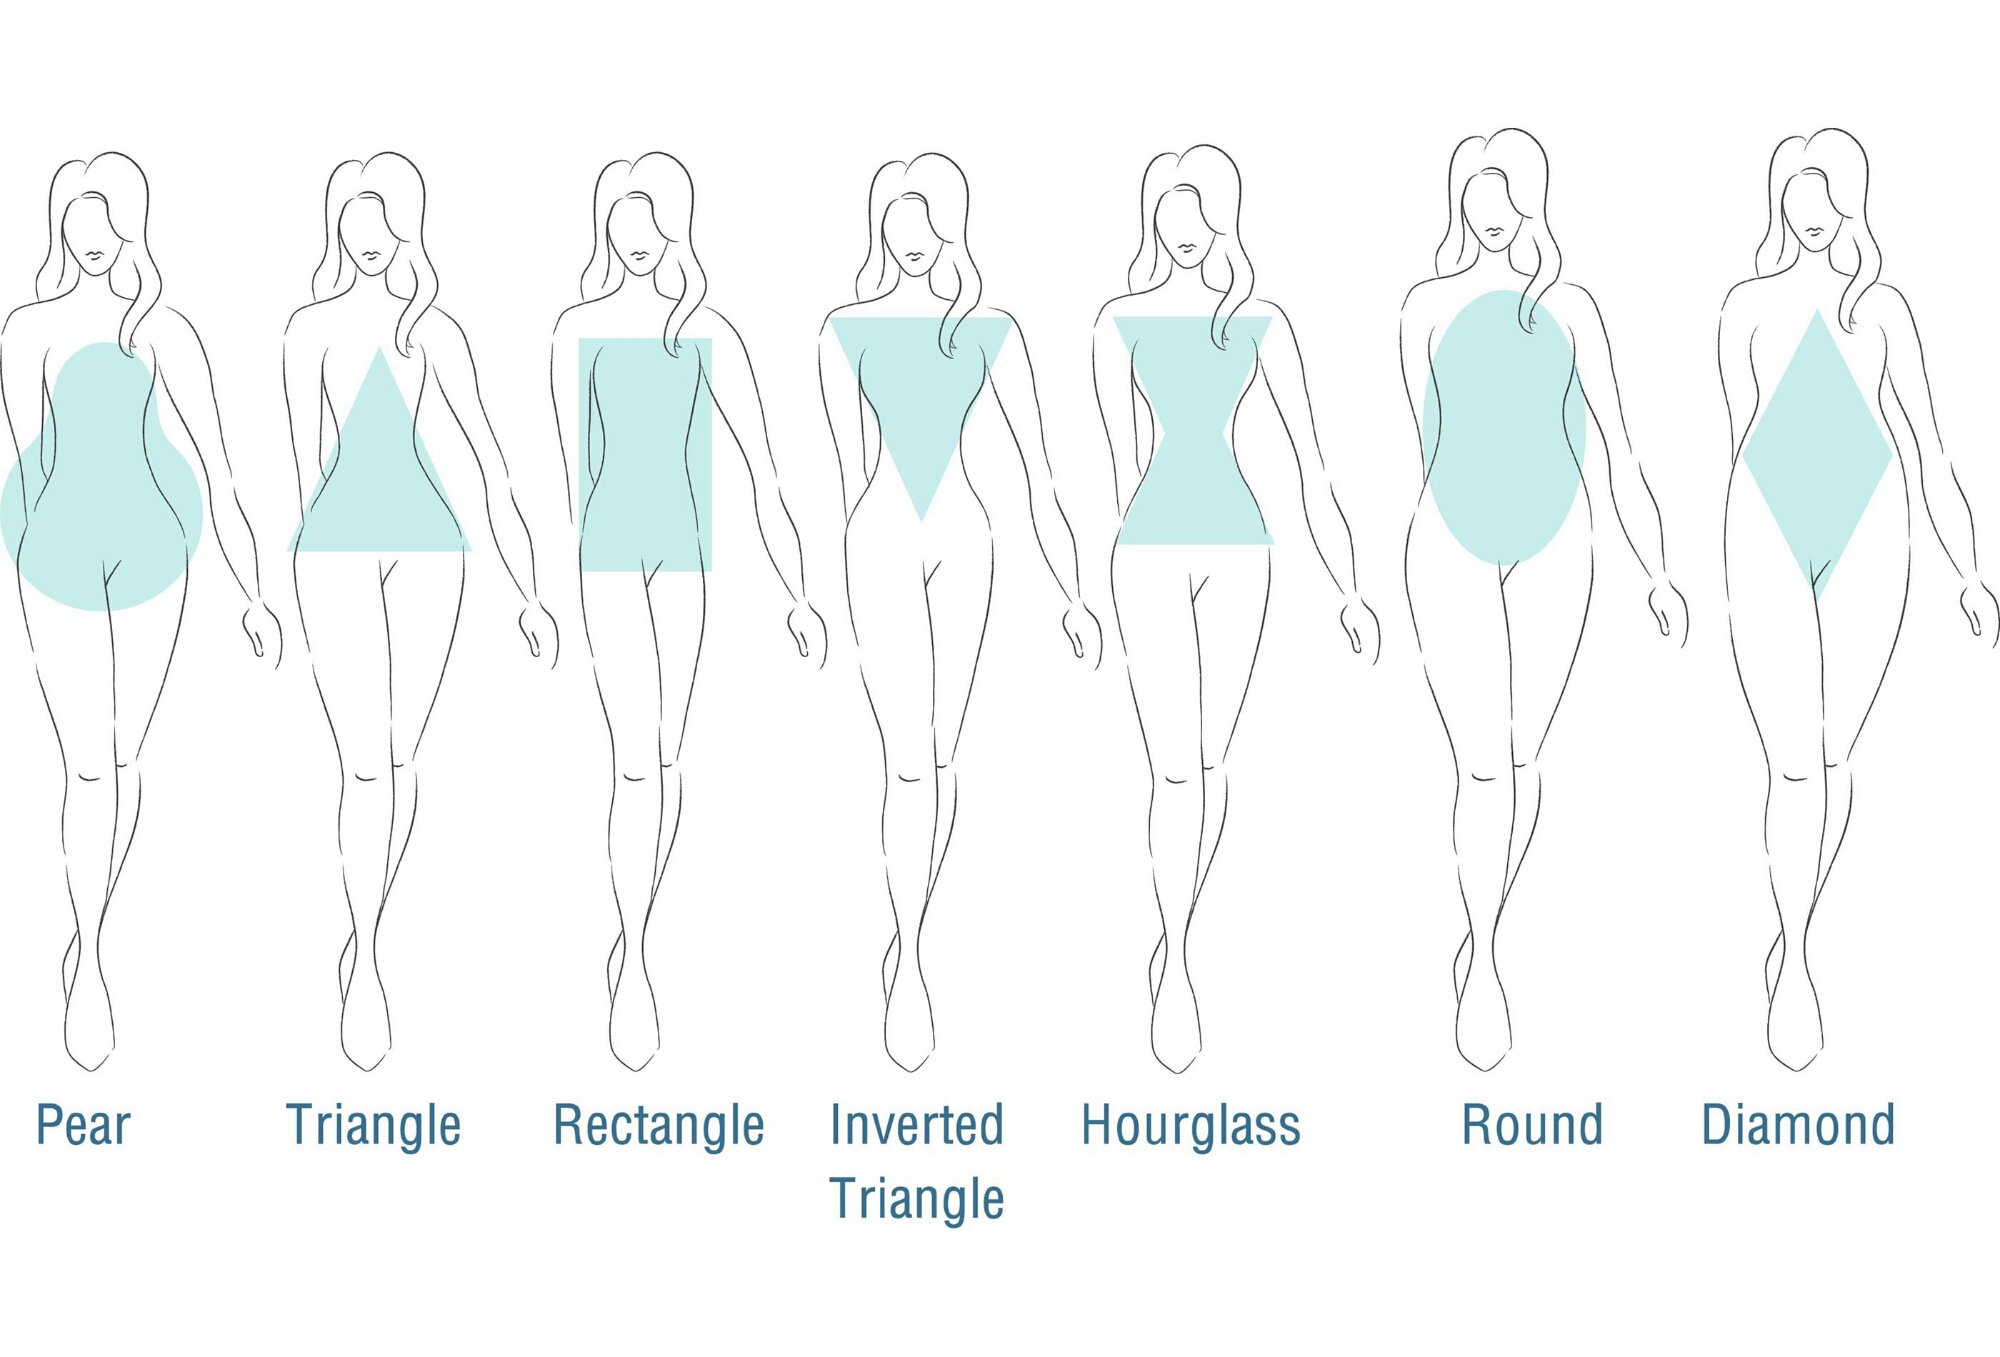 Which Binibini body type do you like the most